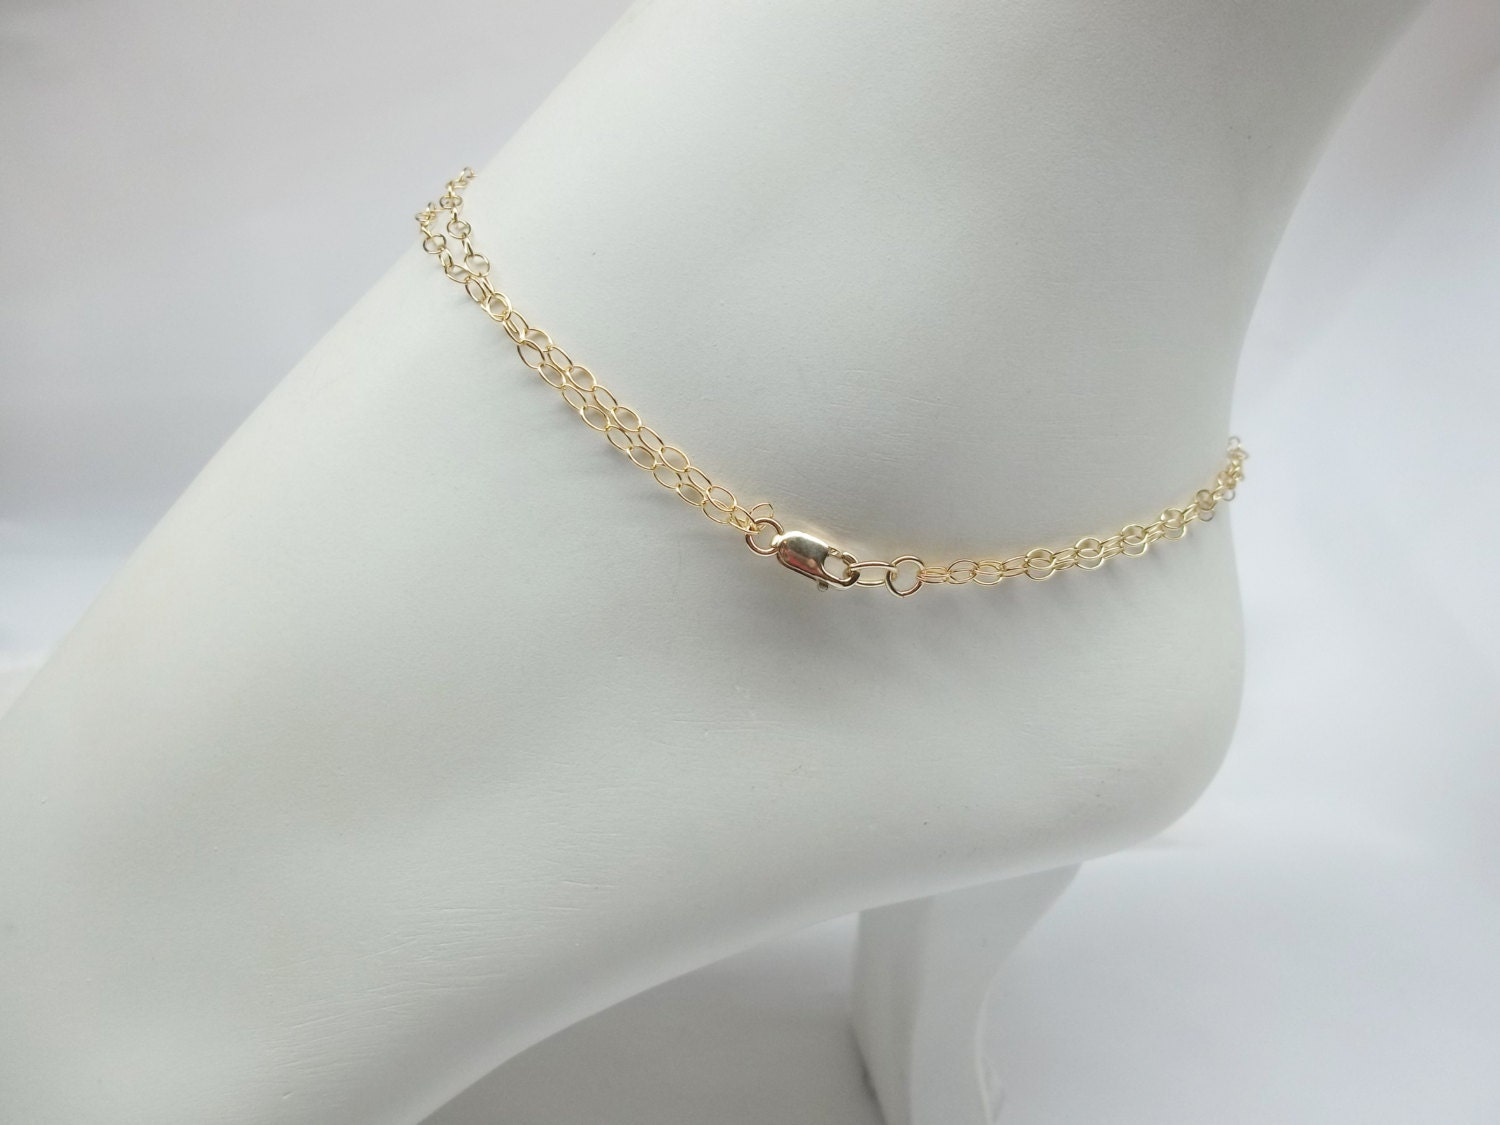 bracelet cross p double ankle chain il fullxfull free strand gold anklet filled